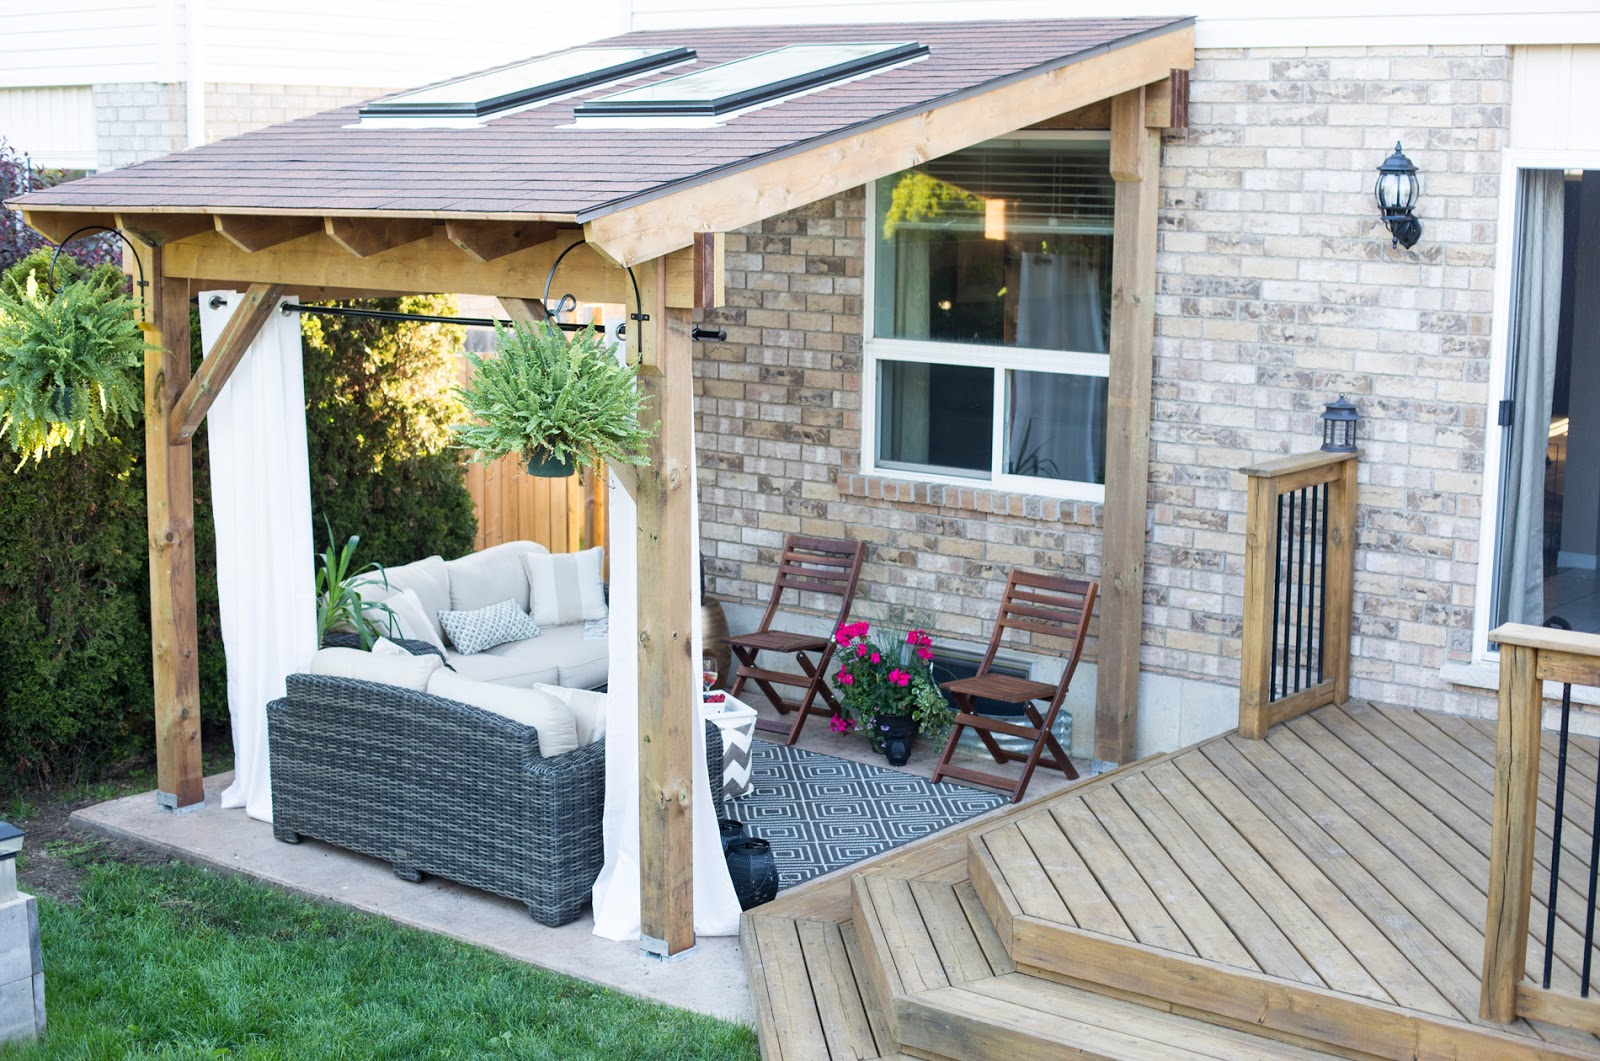 Easy build Covered patios designs - CareHomeDecor on Backyard Patio Cover Ideas  id=32693